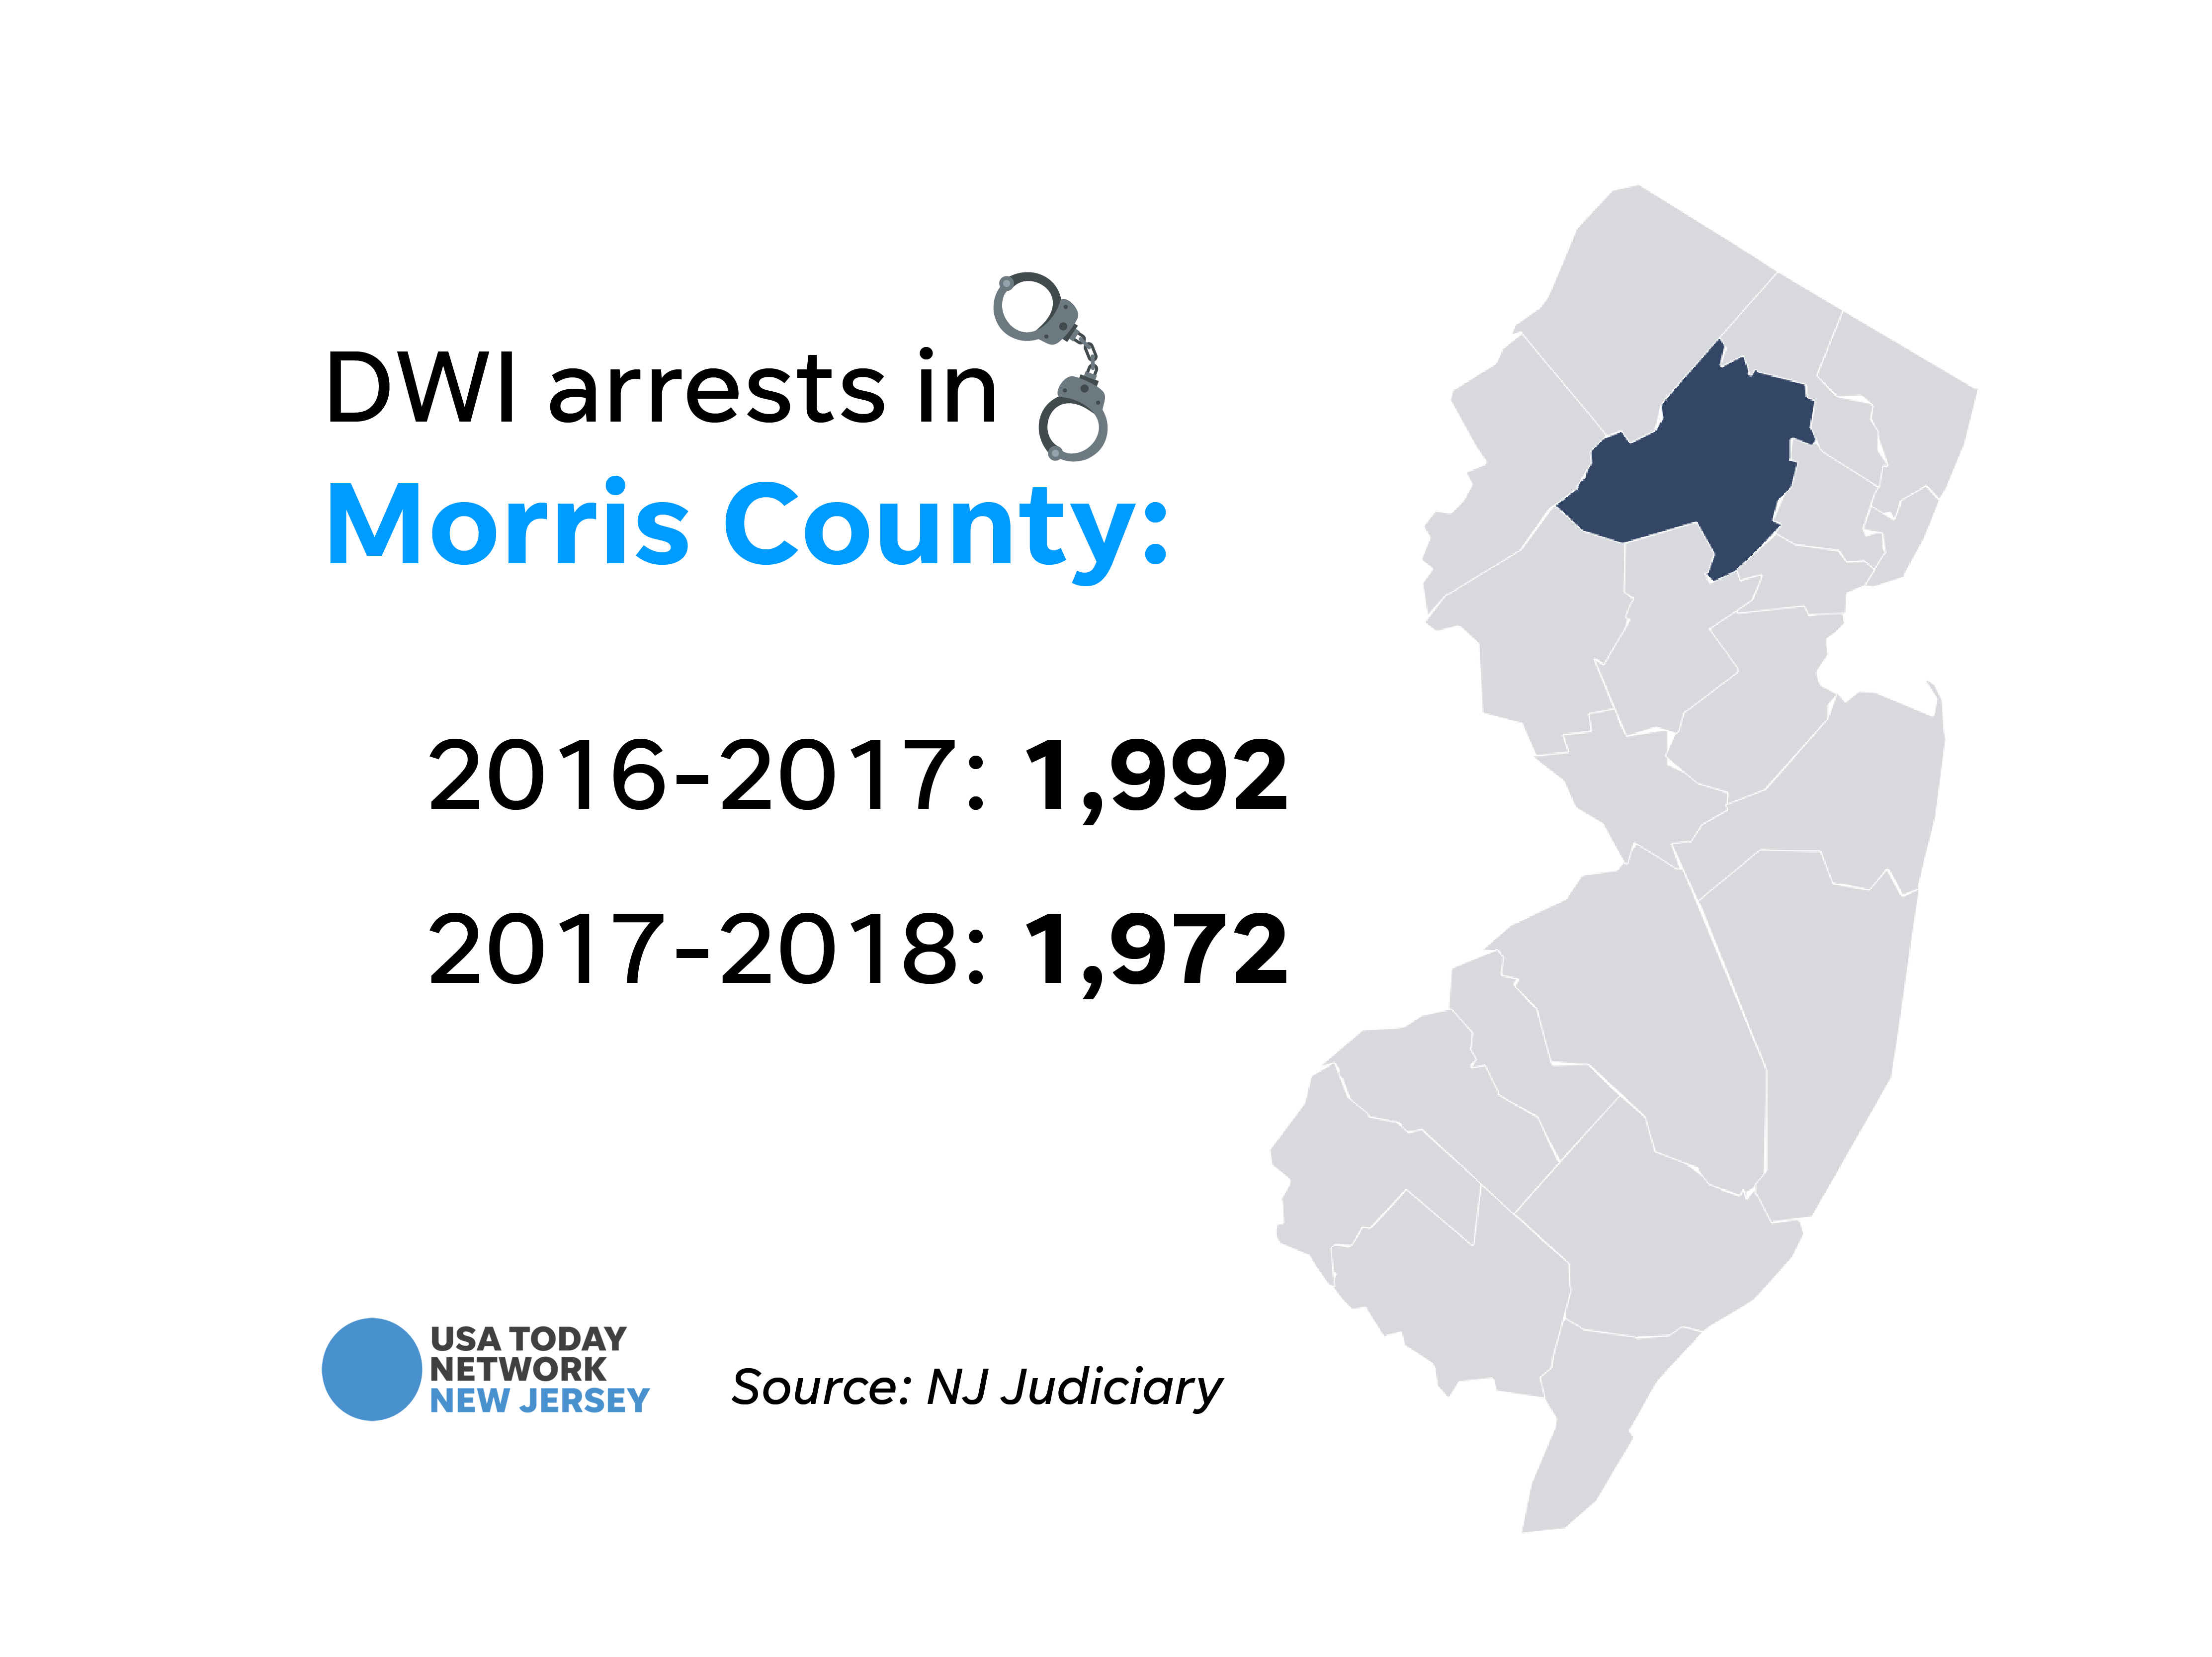 DWI arrests in Morris County.